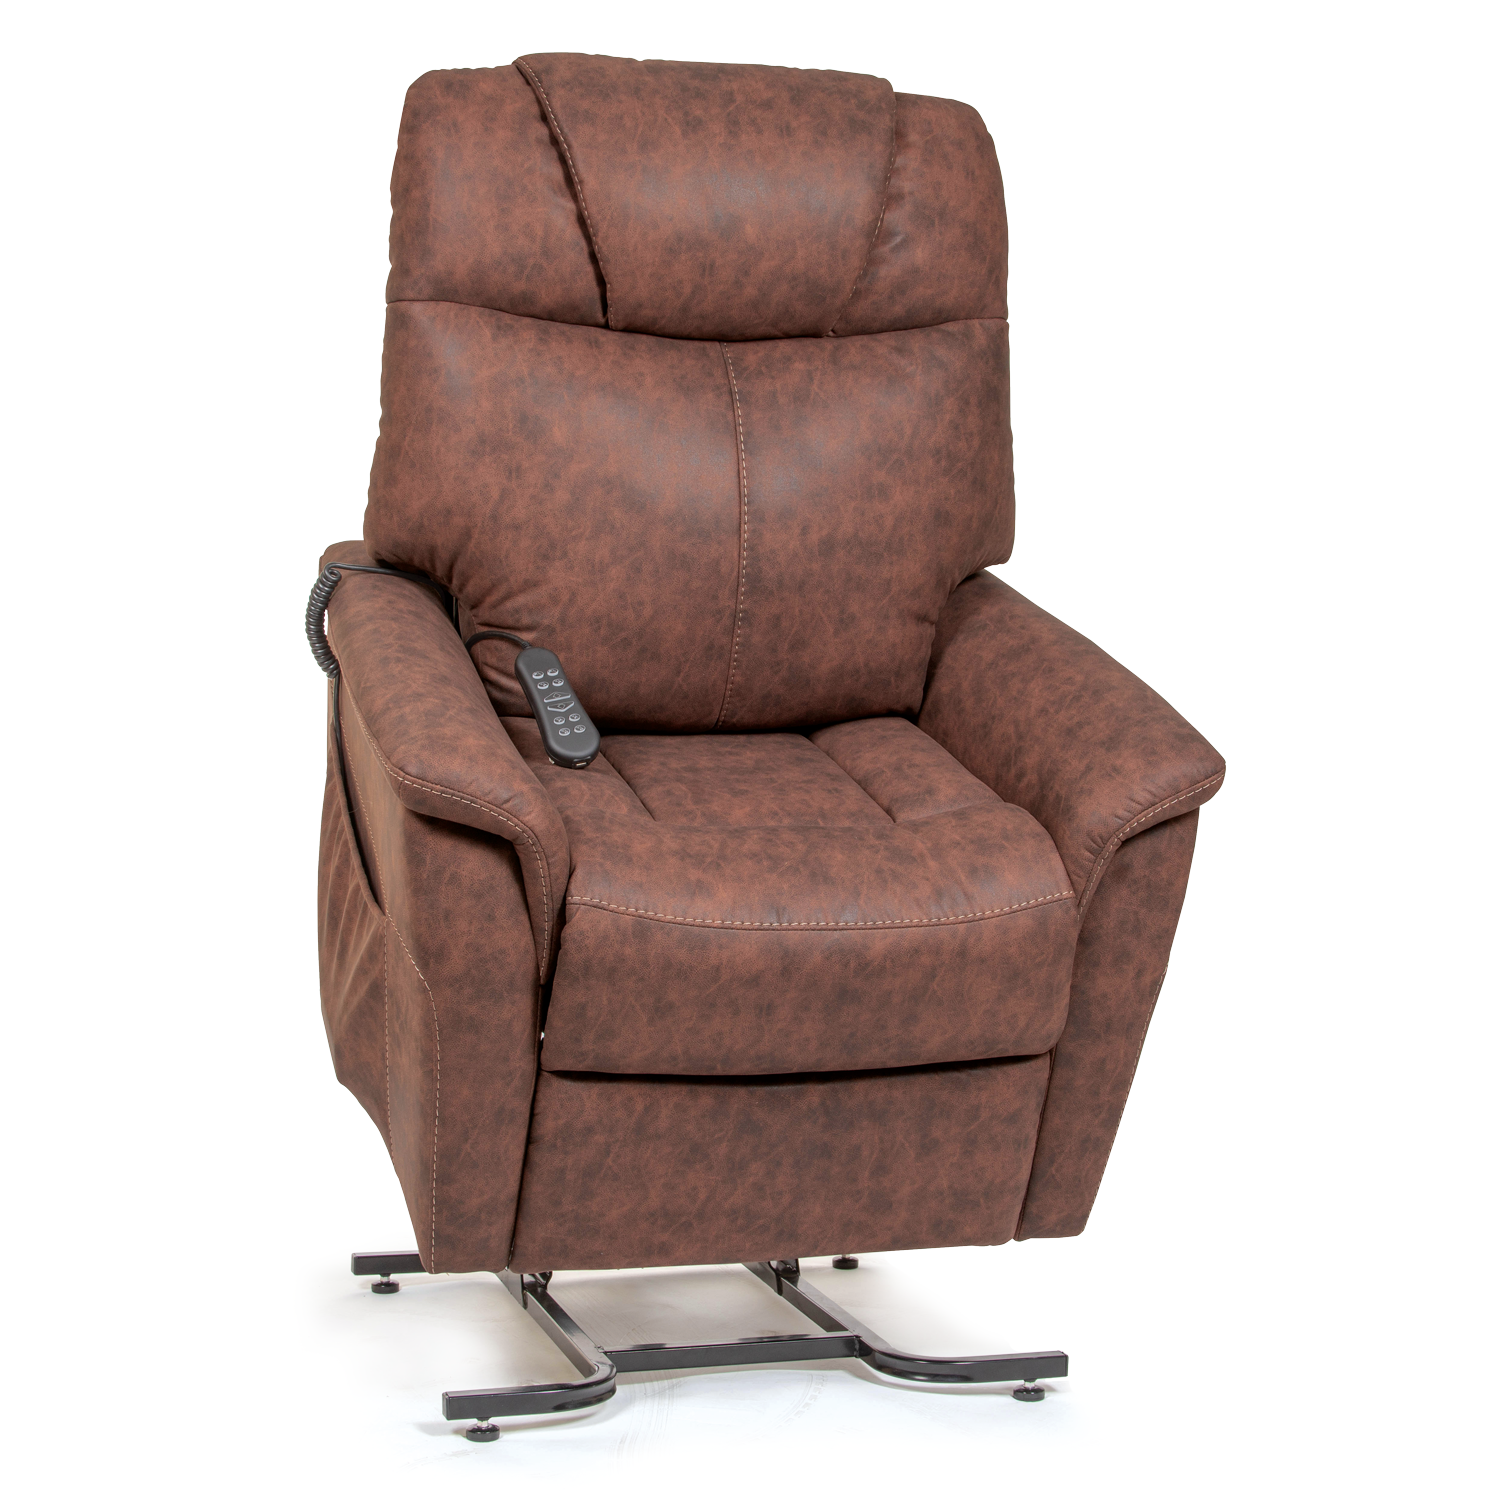 Strange Lift Chair Recliners Lincoln Mobility Uwap Interior Chair Design Uwaporg